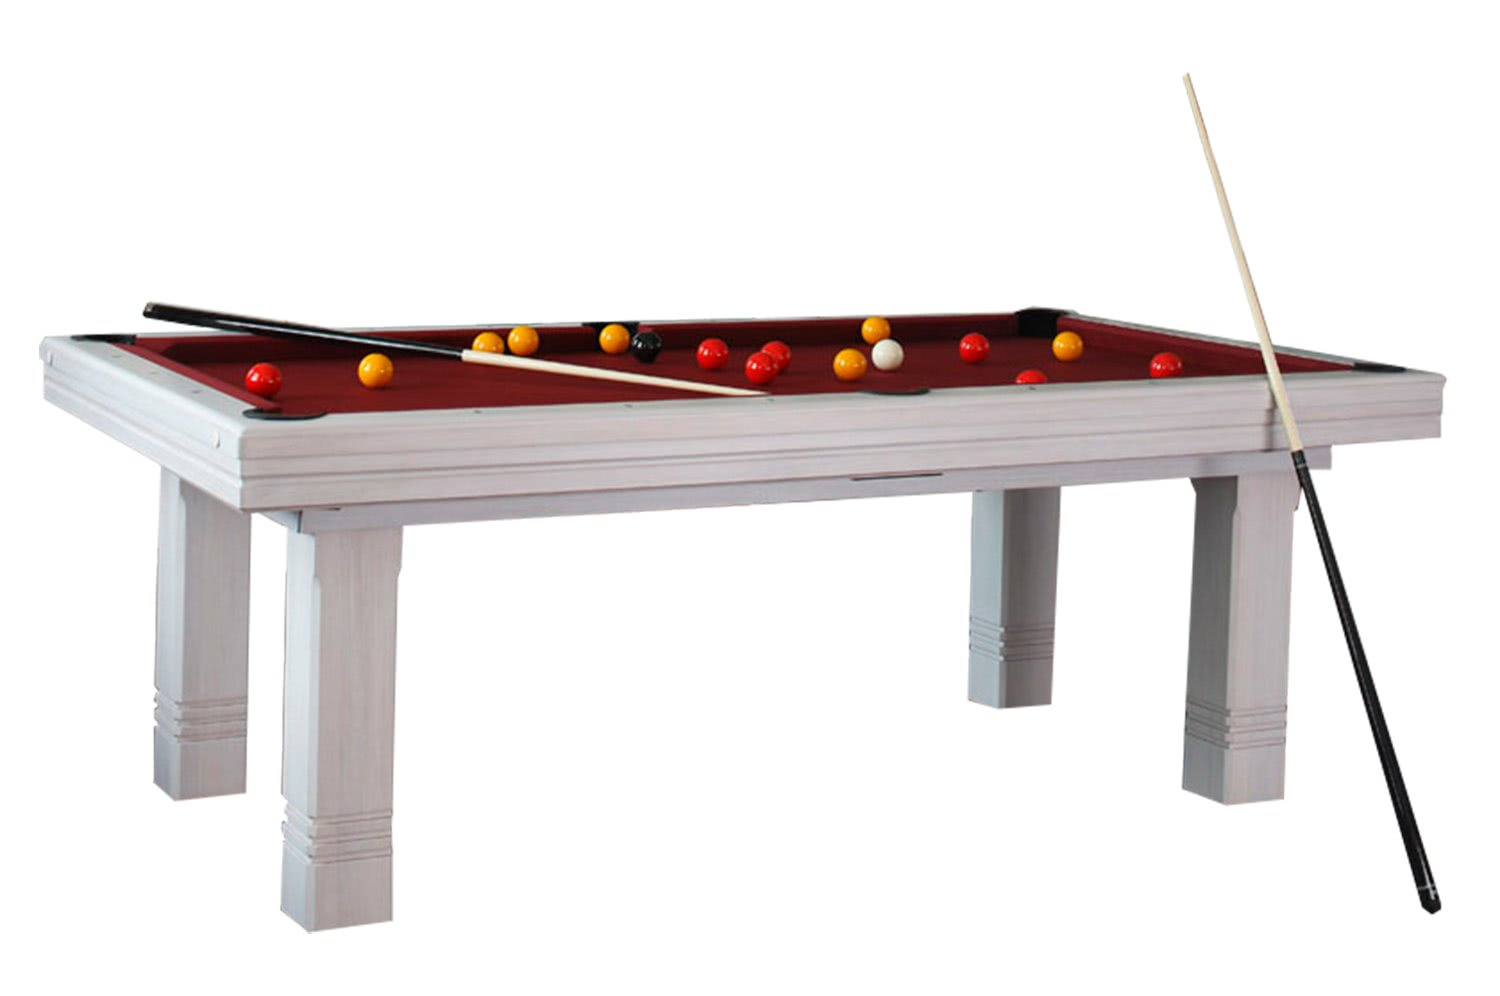 billard toulet club pool table 6 ft 7 ft 8 ft liberty games. Black Bedroom Furniture Sets. Home Design Ideas